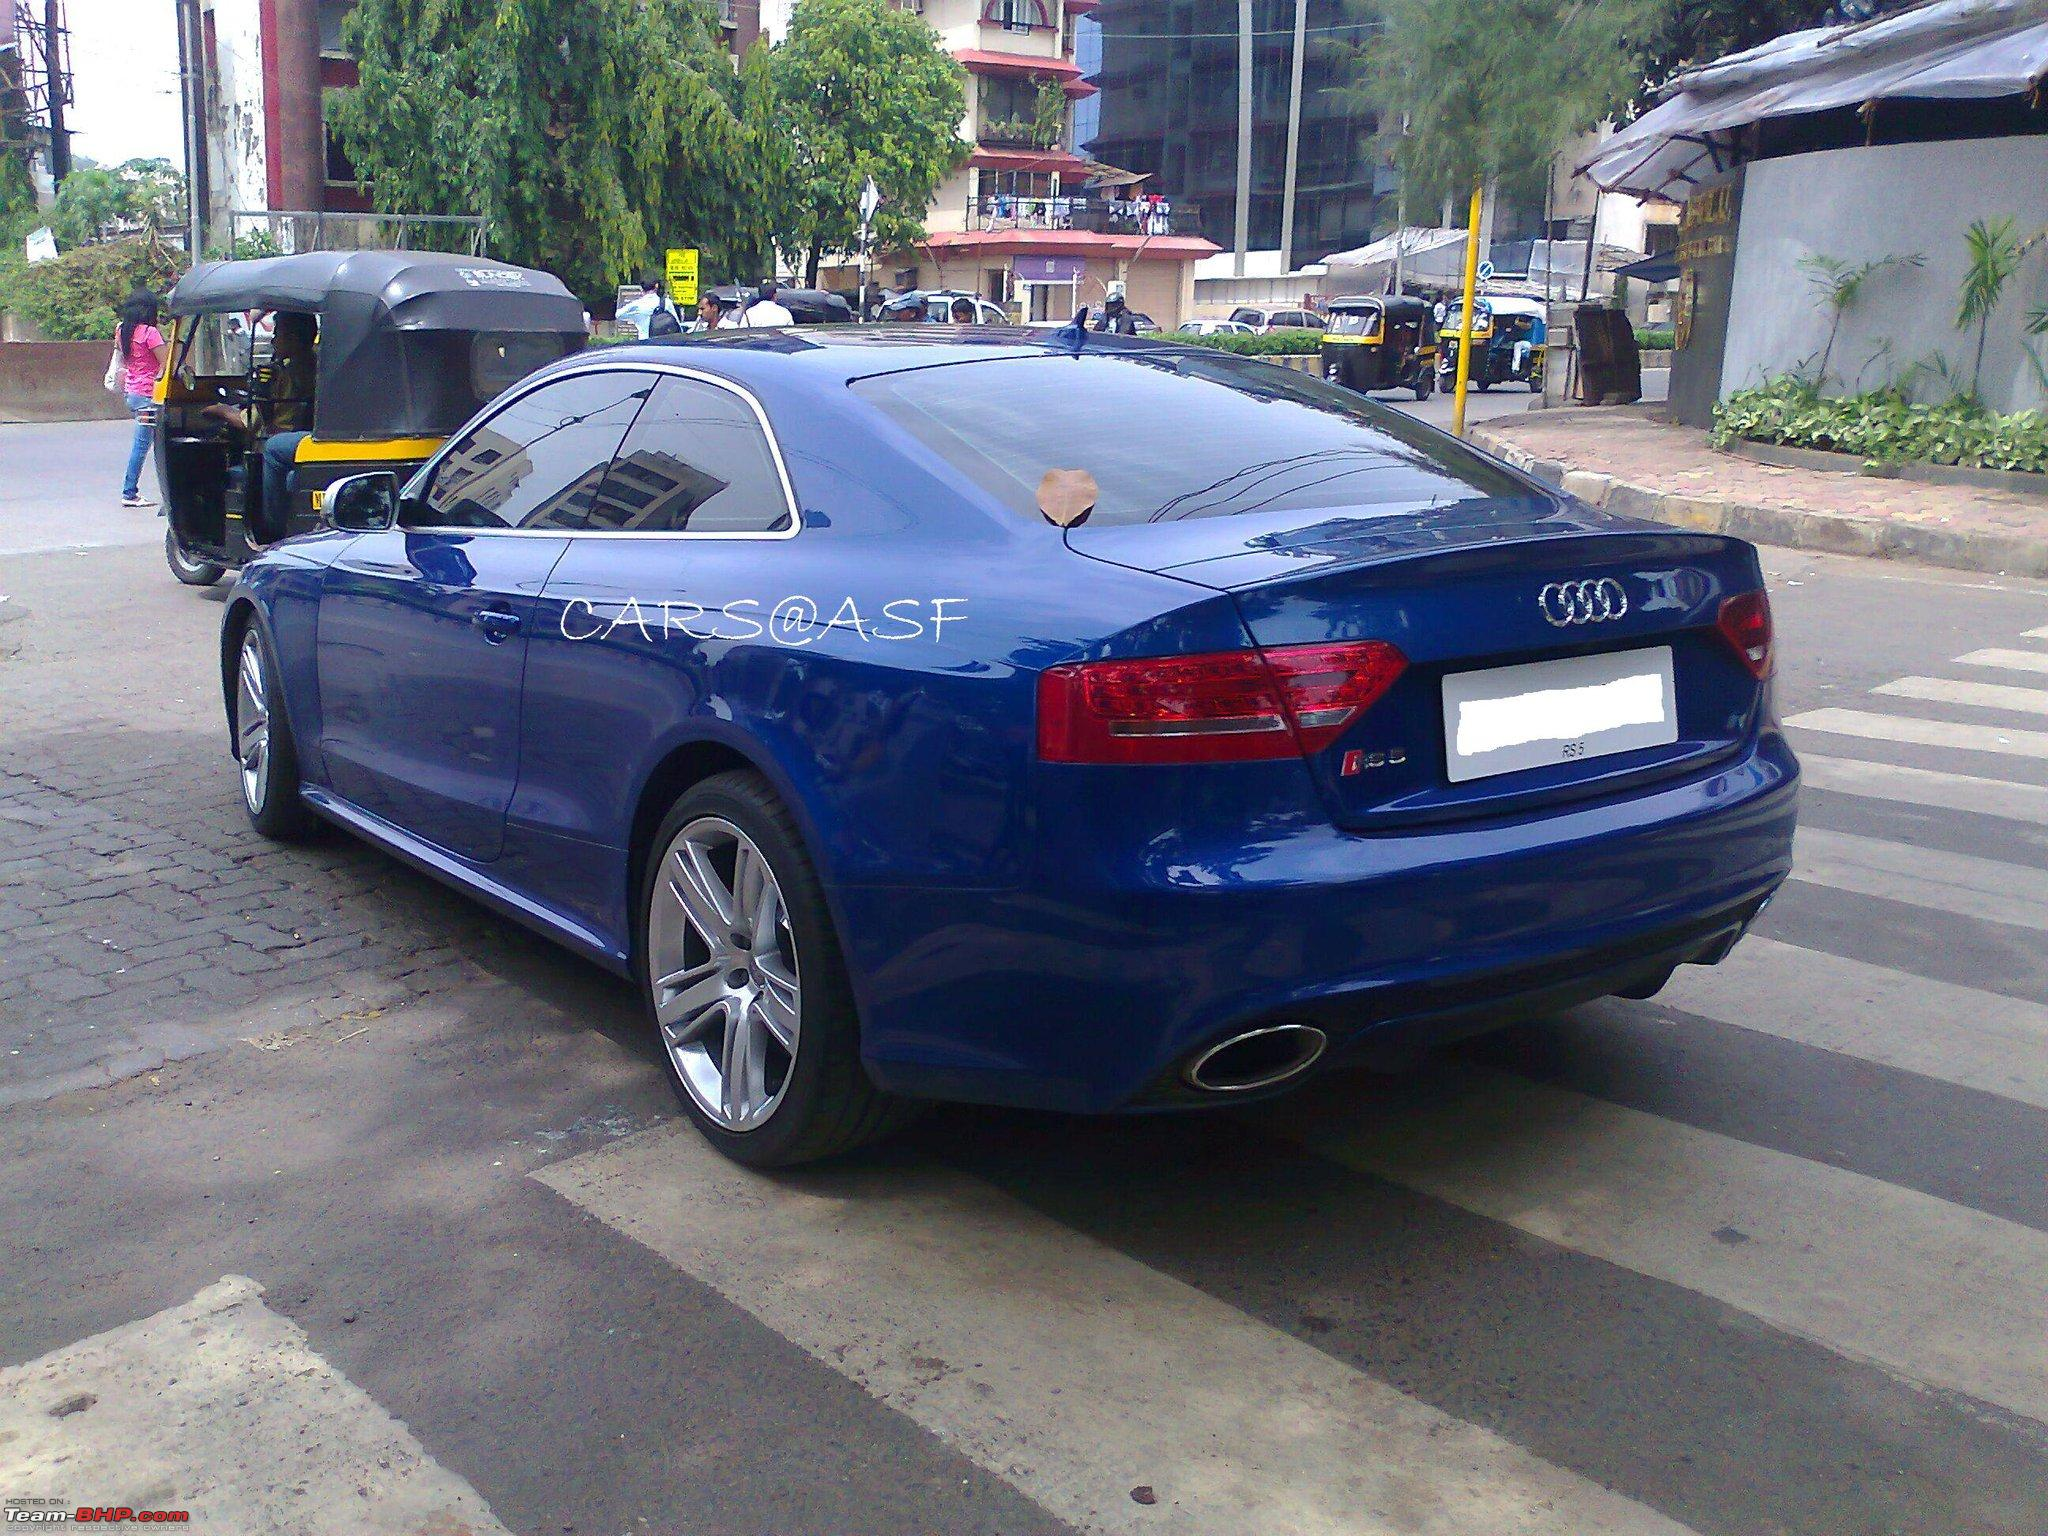 Blue RS5 in Andheri.